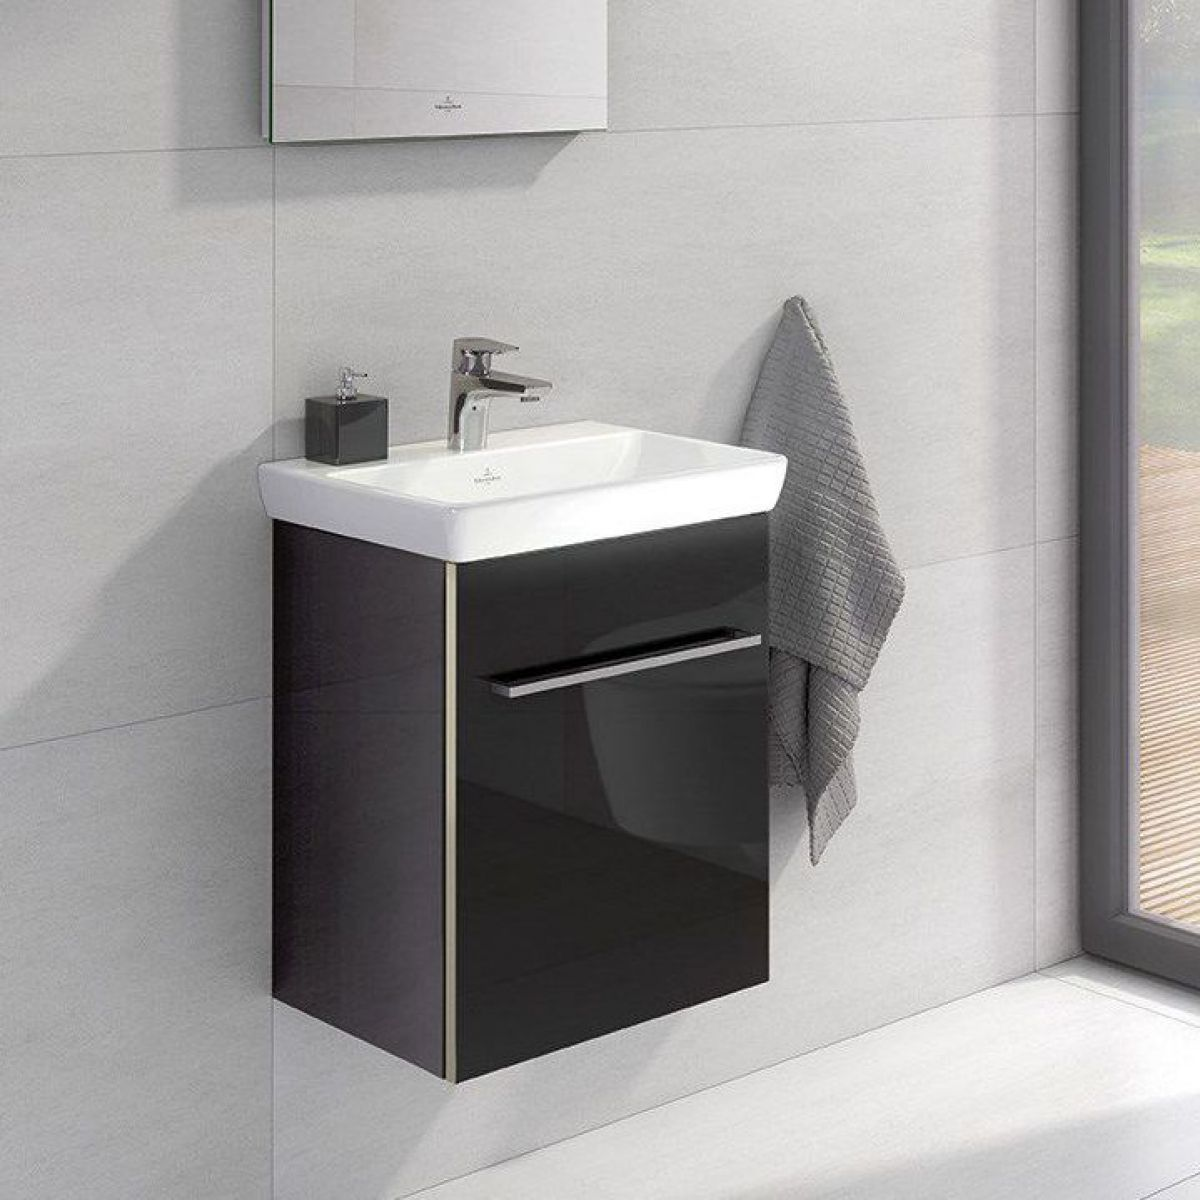 villeroy boch avento single door vanity unit basin uk bathrooms. Black Bedroom Furniture Sets. Home Design Ideas